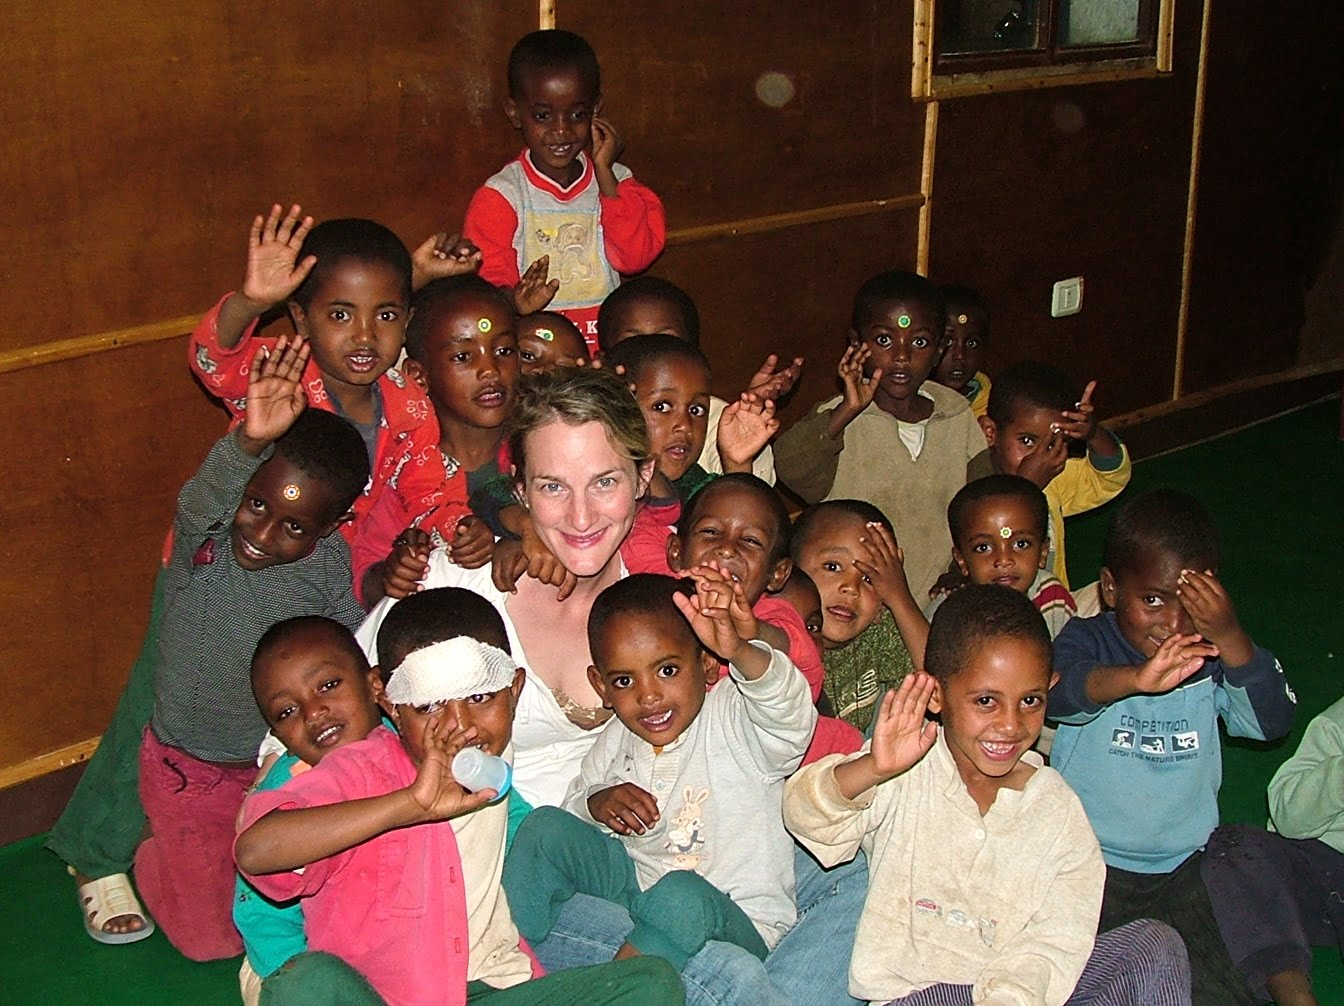 DSCF4392 2 Israelis Bring ART Joy & Love To Ethiopian HIV Orphans